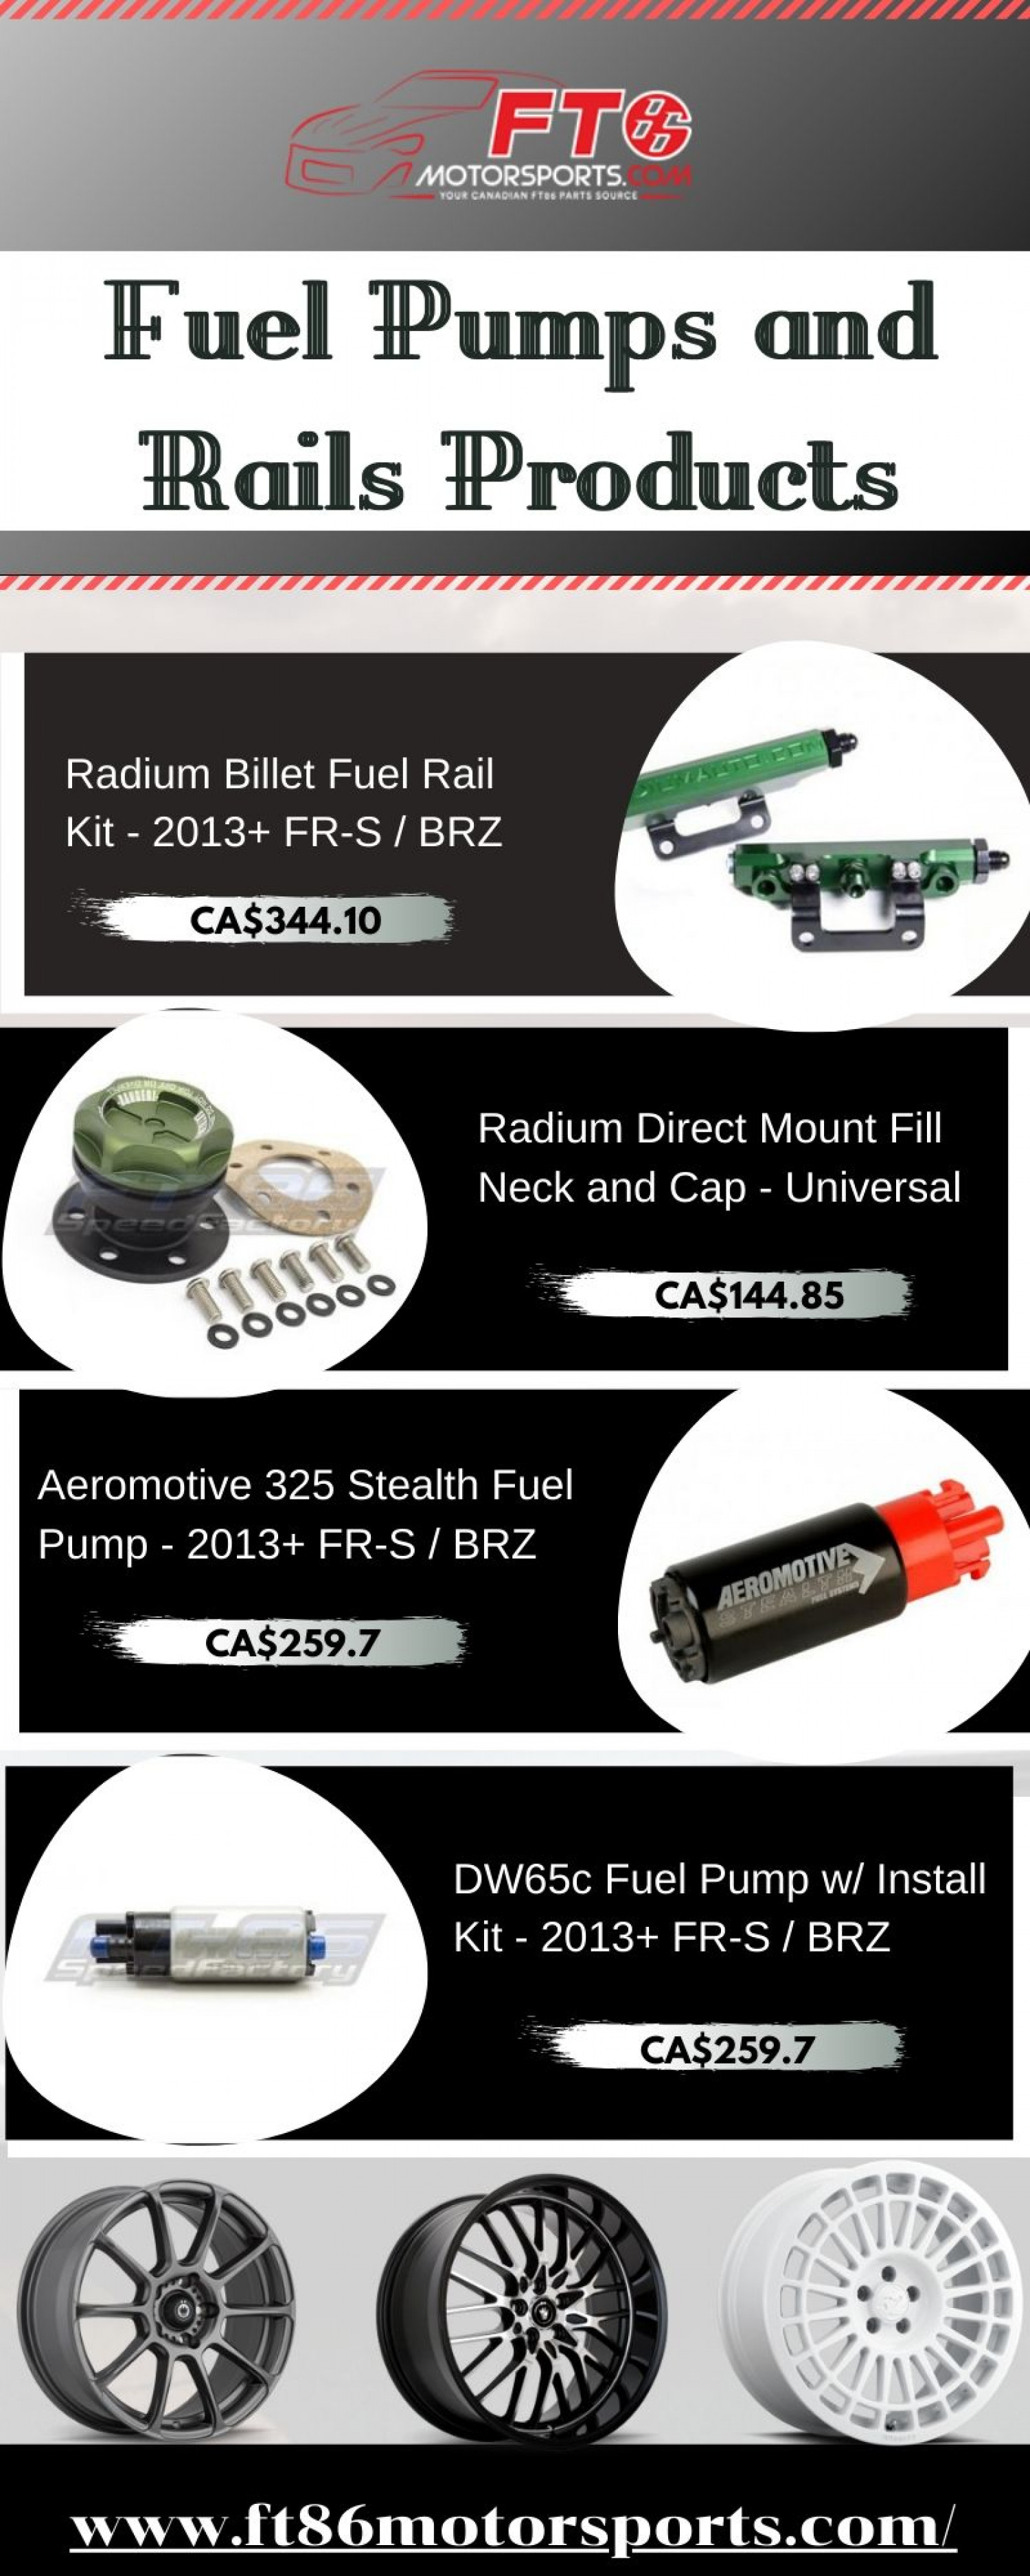 Products for Fuel Pumps and Rails in Canada Infographic